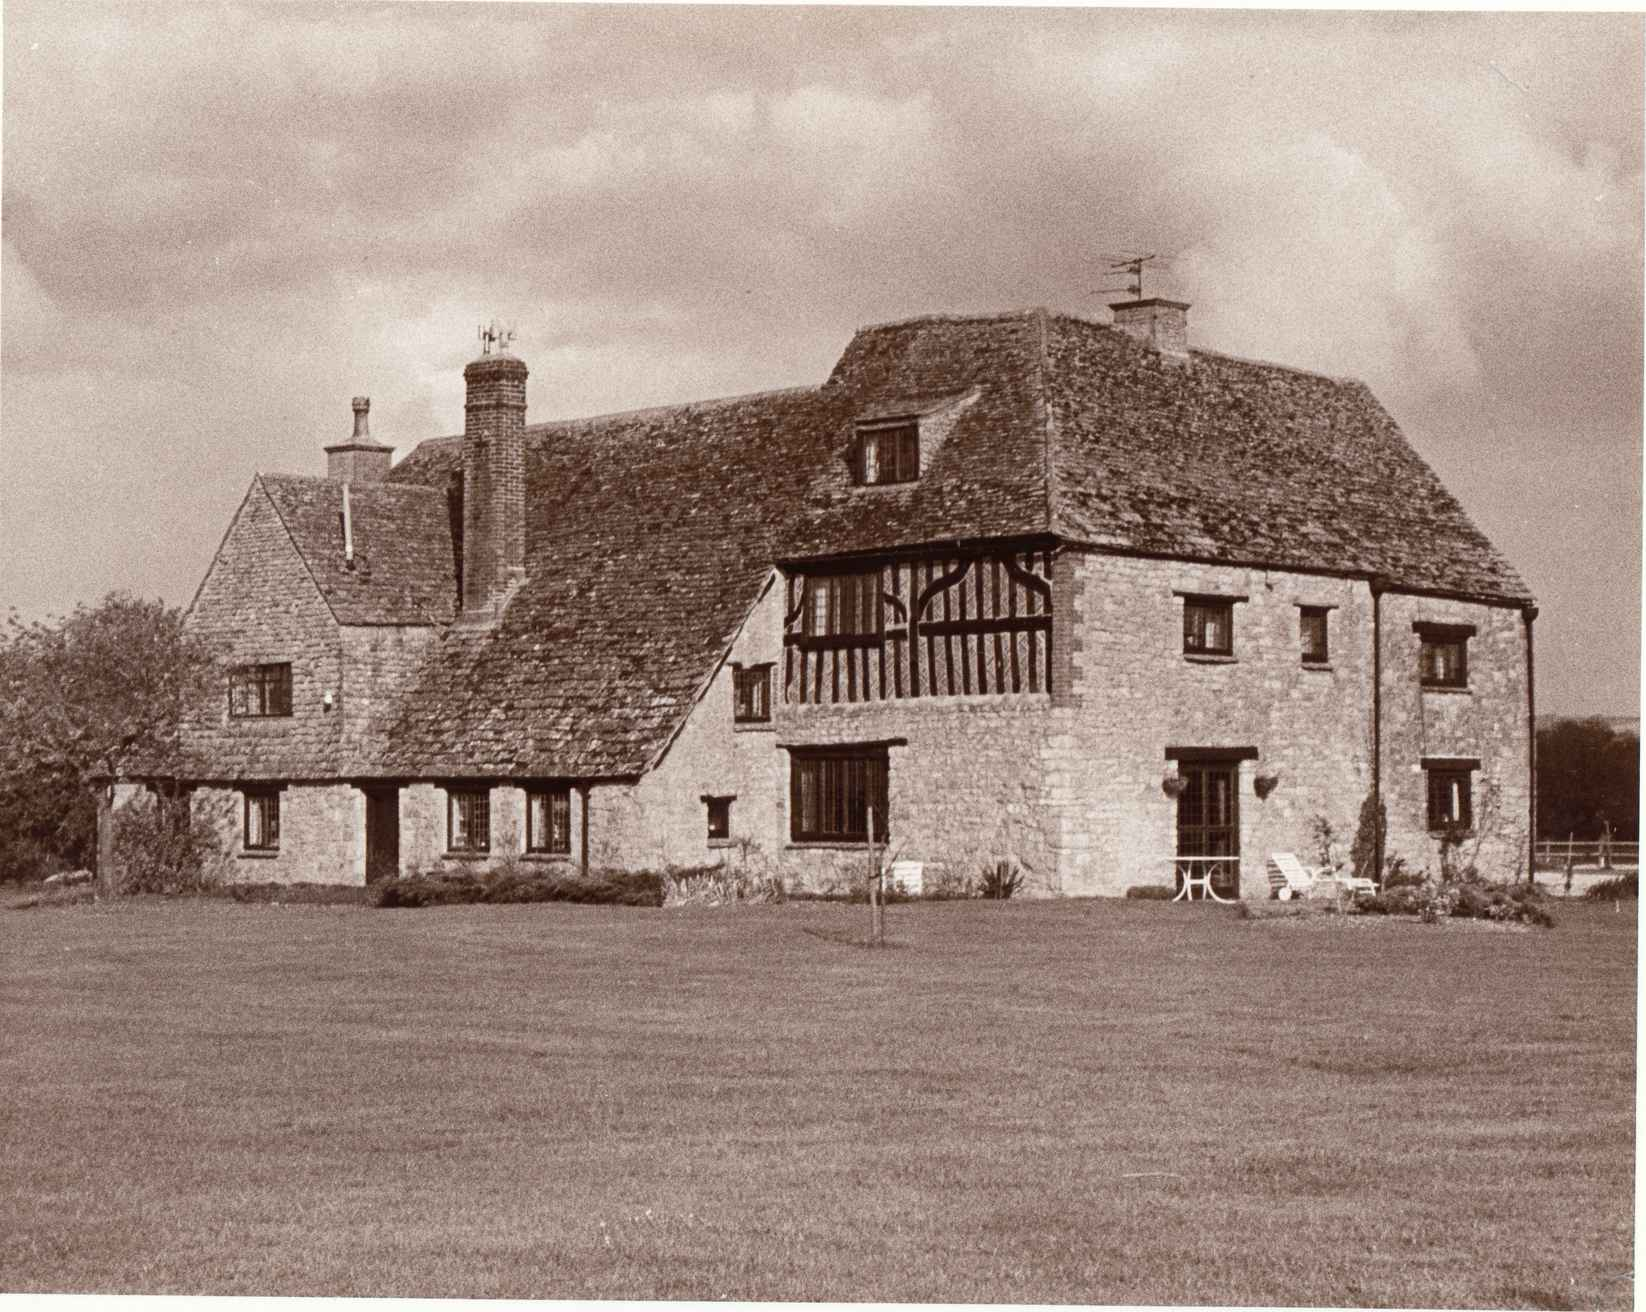 Earlscourt Manor House - closely associated with Hintons in centuries past